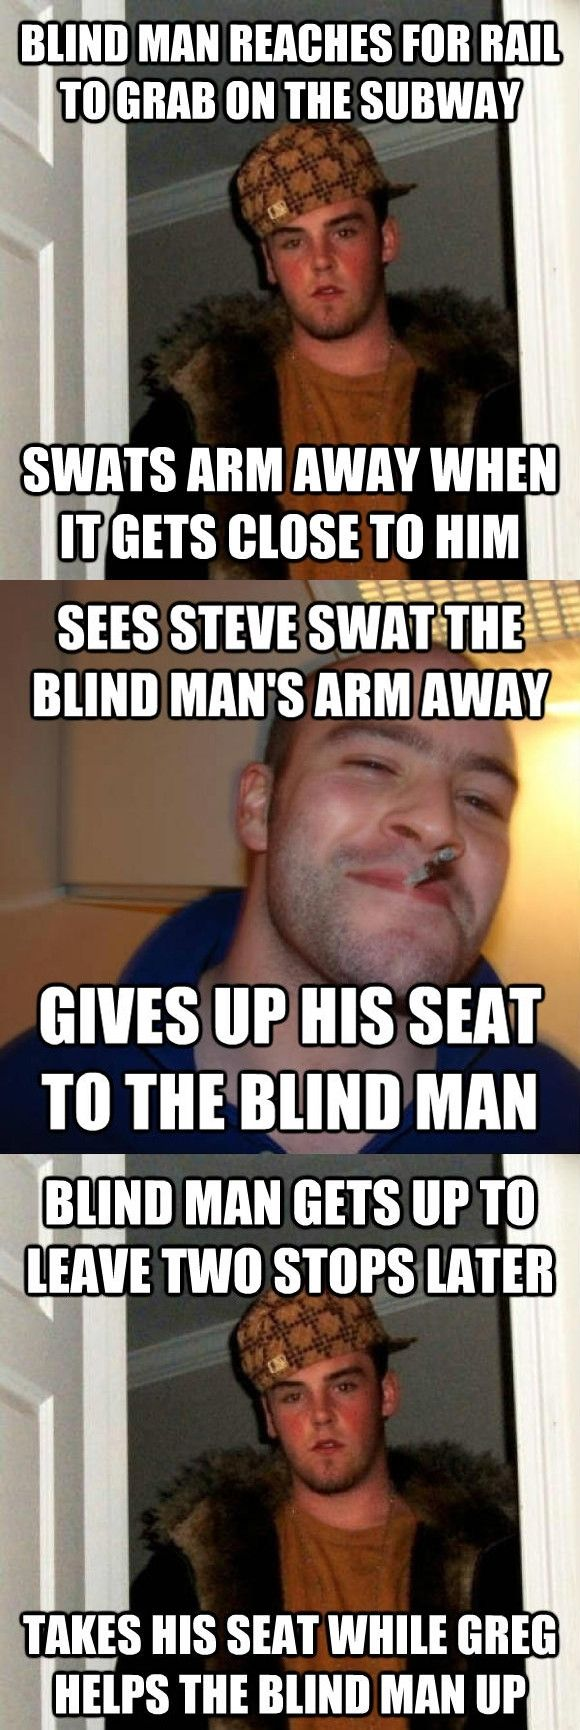 I saw Scumbag Steve and Good Guy Greg meet on the subway this evening #meme #scumbag #steve #greg #meet #subway #evening #funny #humor #comedy #lol